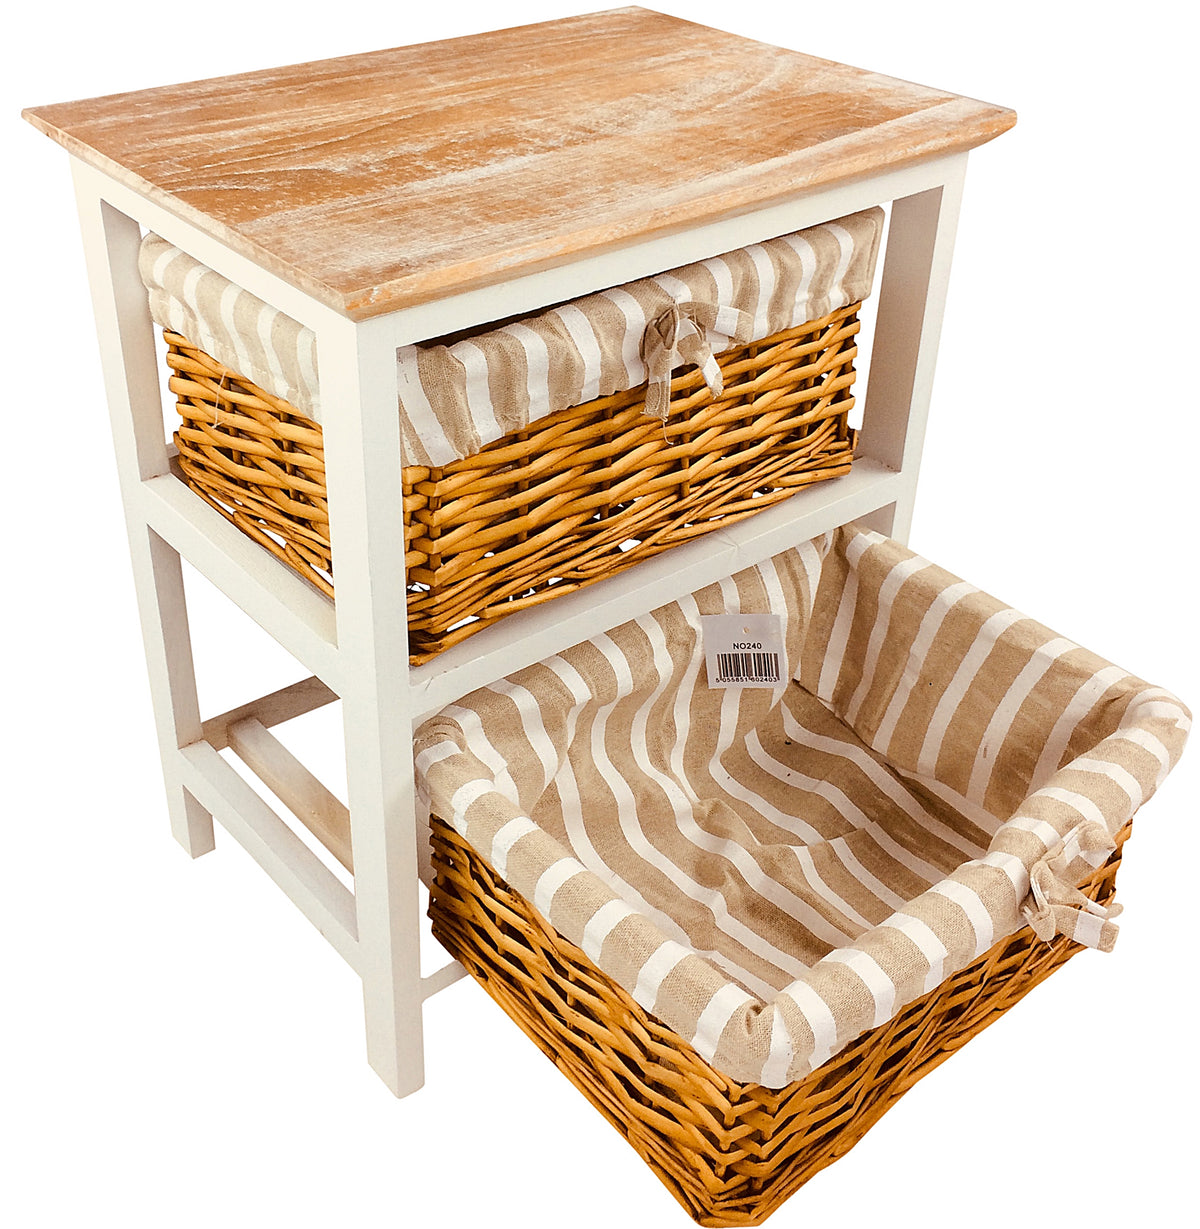 Wooden Storage Cabinet With Lined Baskets - Seashore No4